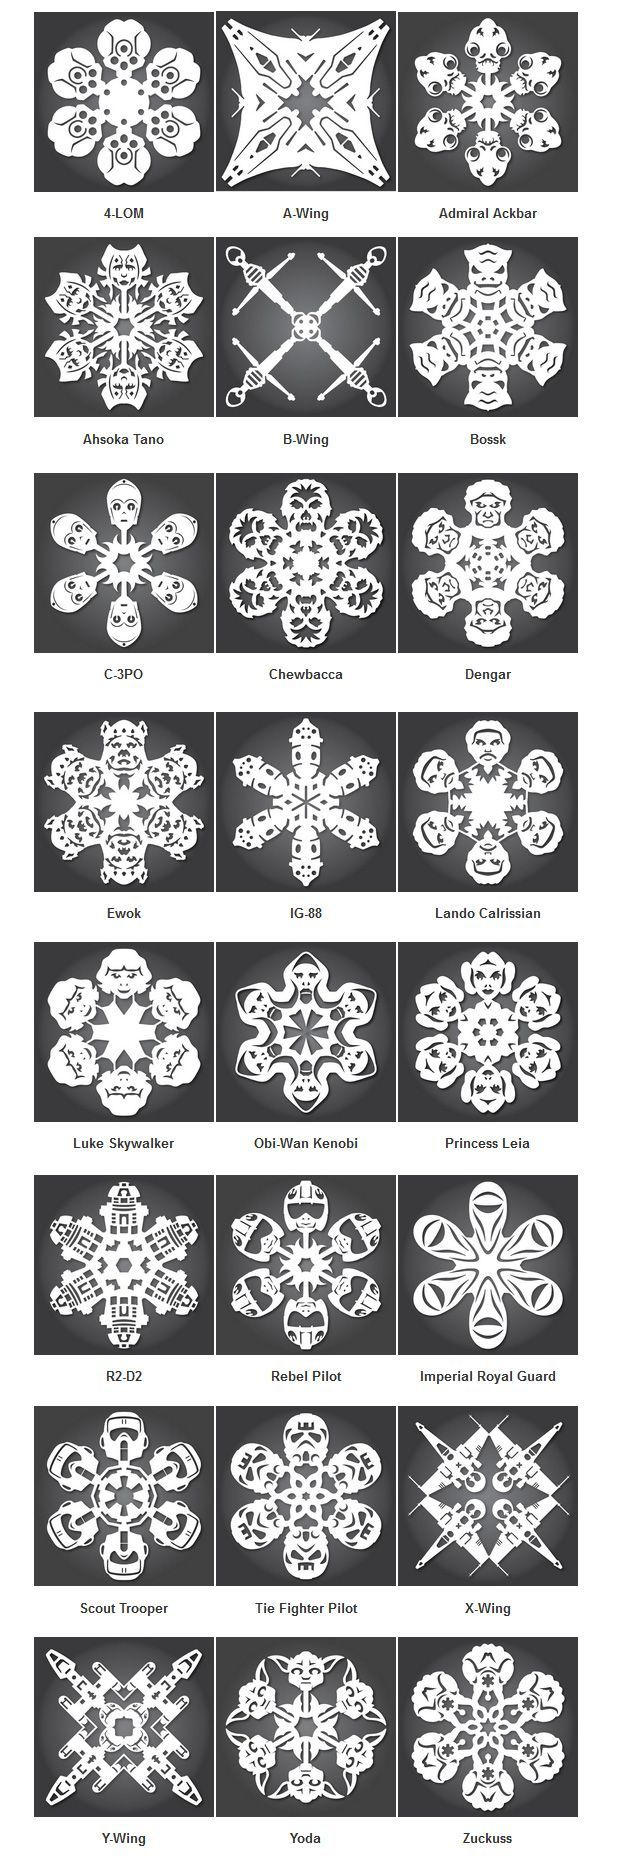 Make Your Own Star Wars Snowflakes!